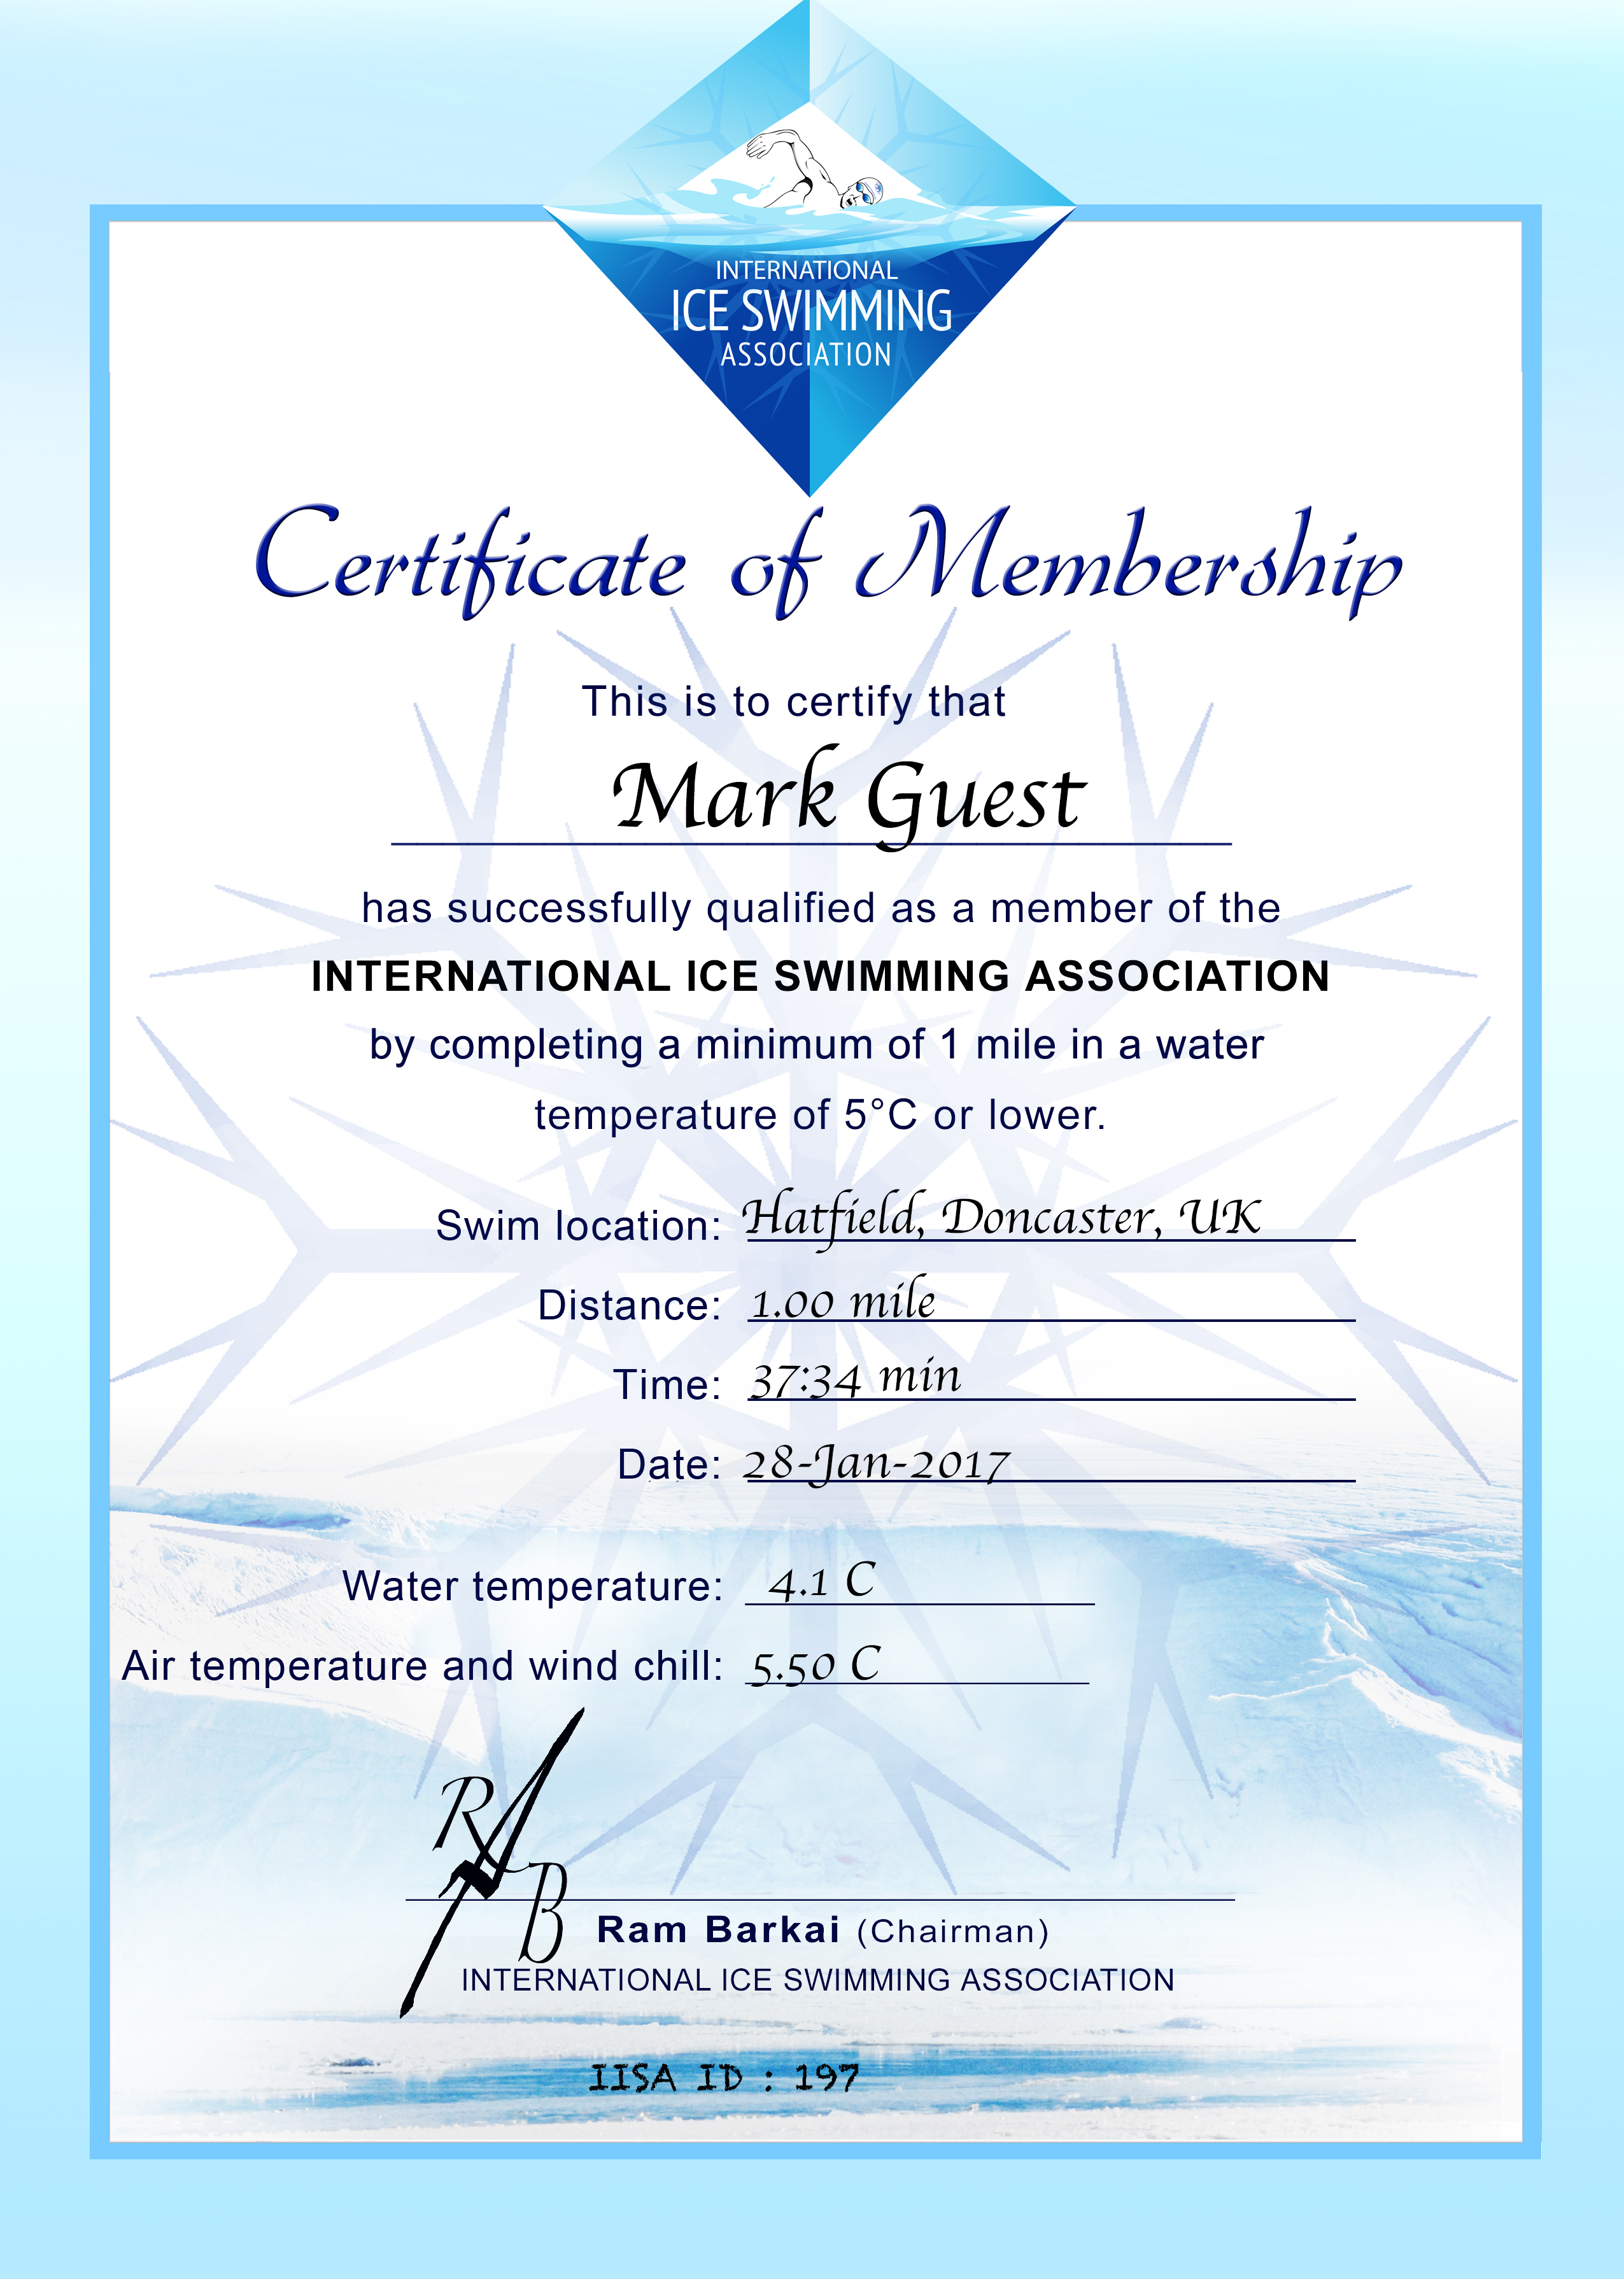 Ice Mile Certificate - Mark Guest